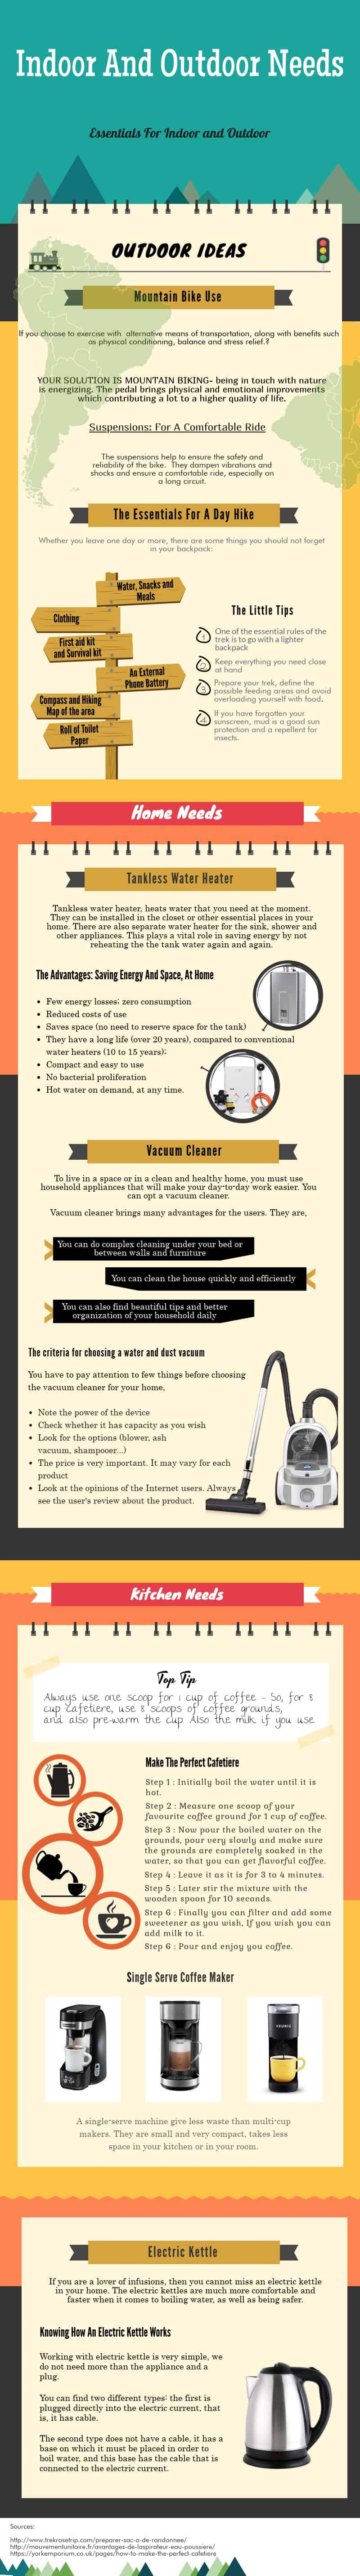 Types Of Vacuum Cleaners In The Market